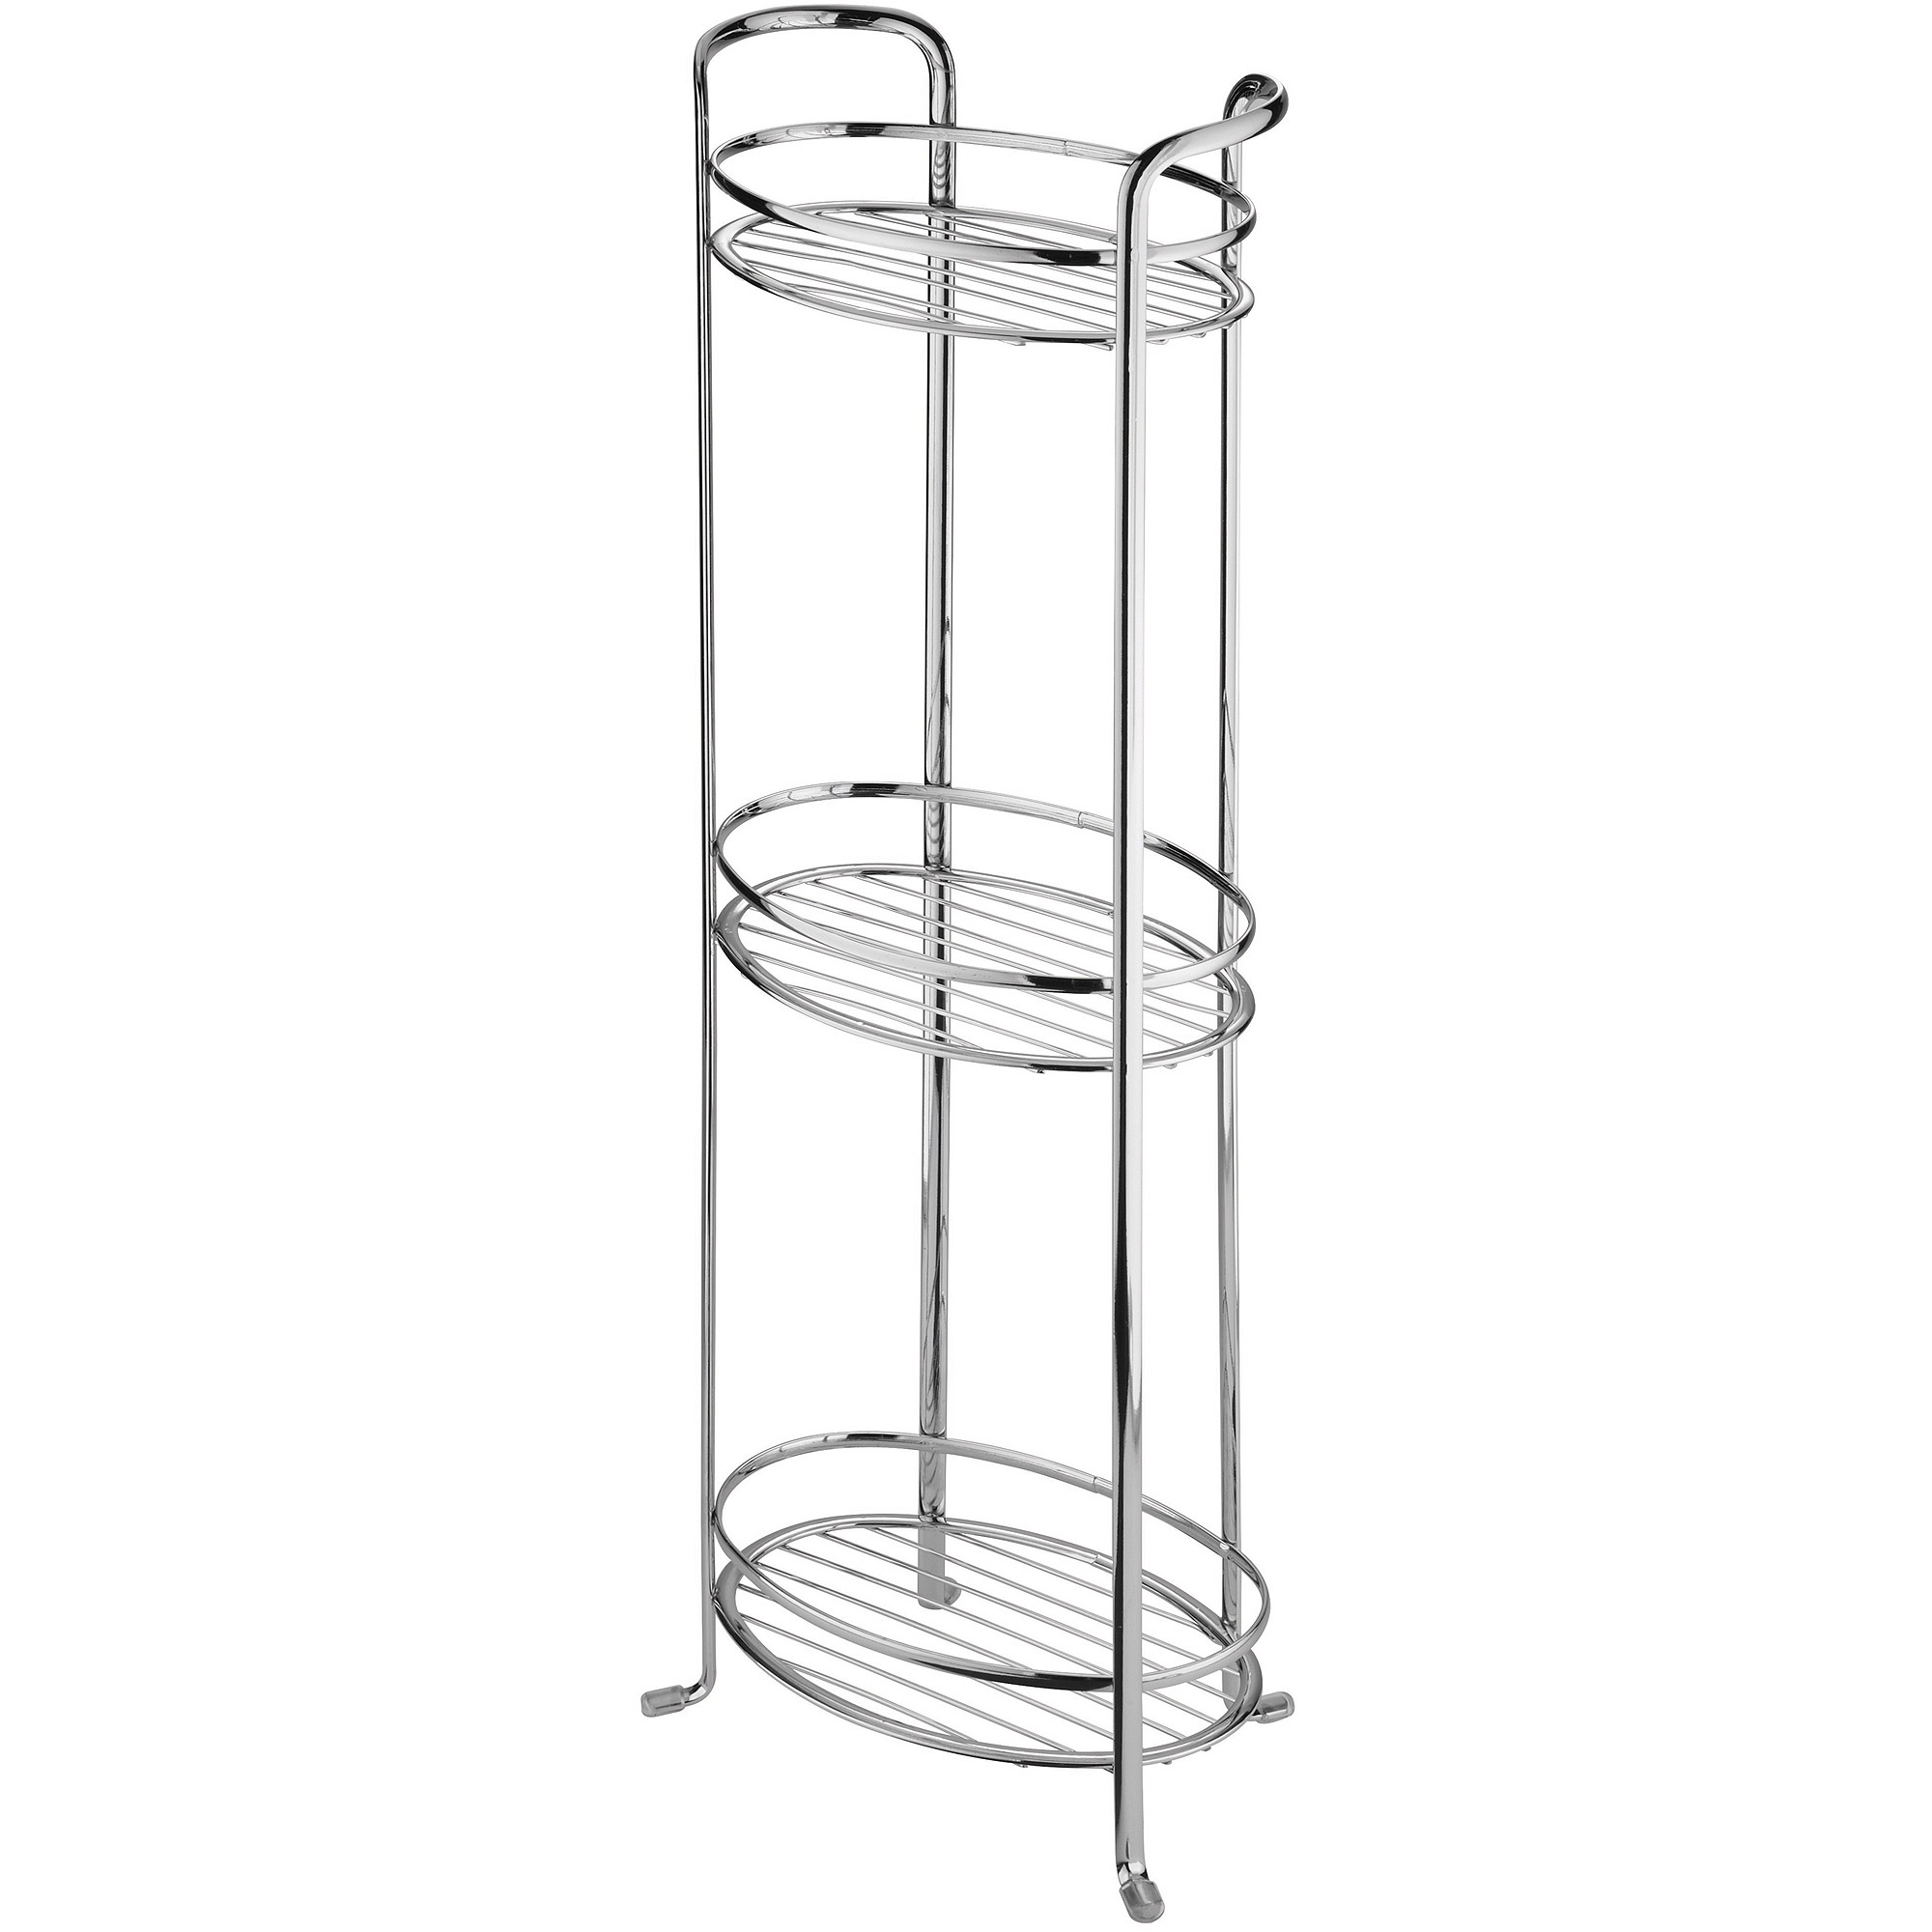 InterDesign Axis Free Standing Bathroom Storage Shelves, for Towels, Soap, Candles, Tissues, Lotion, Accessories, 3 Tier, Chrome